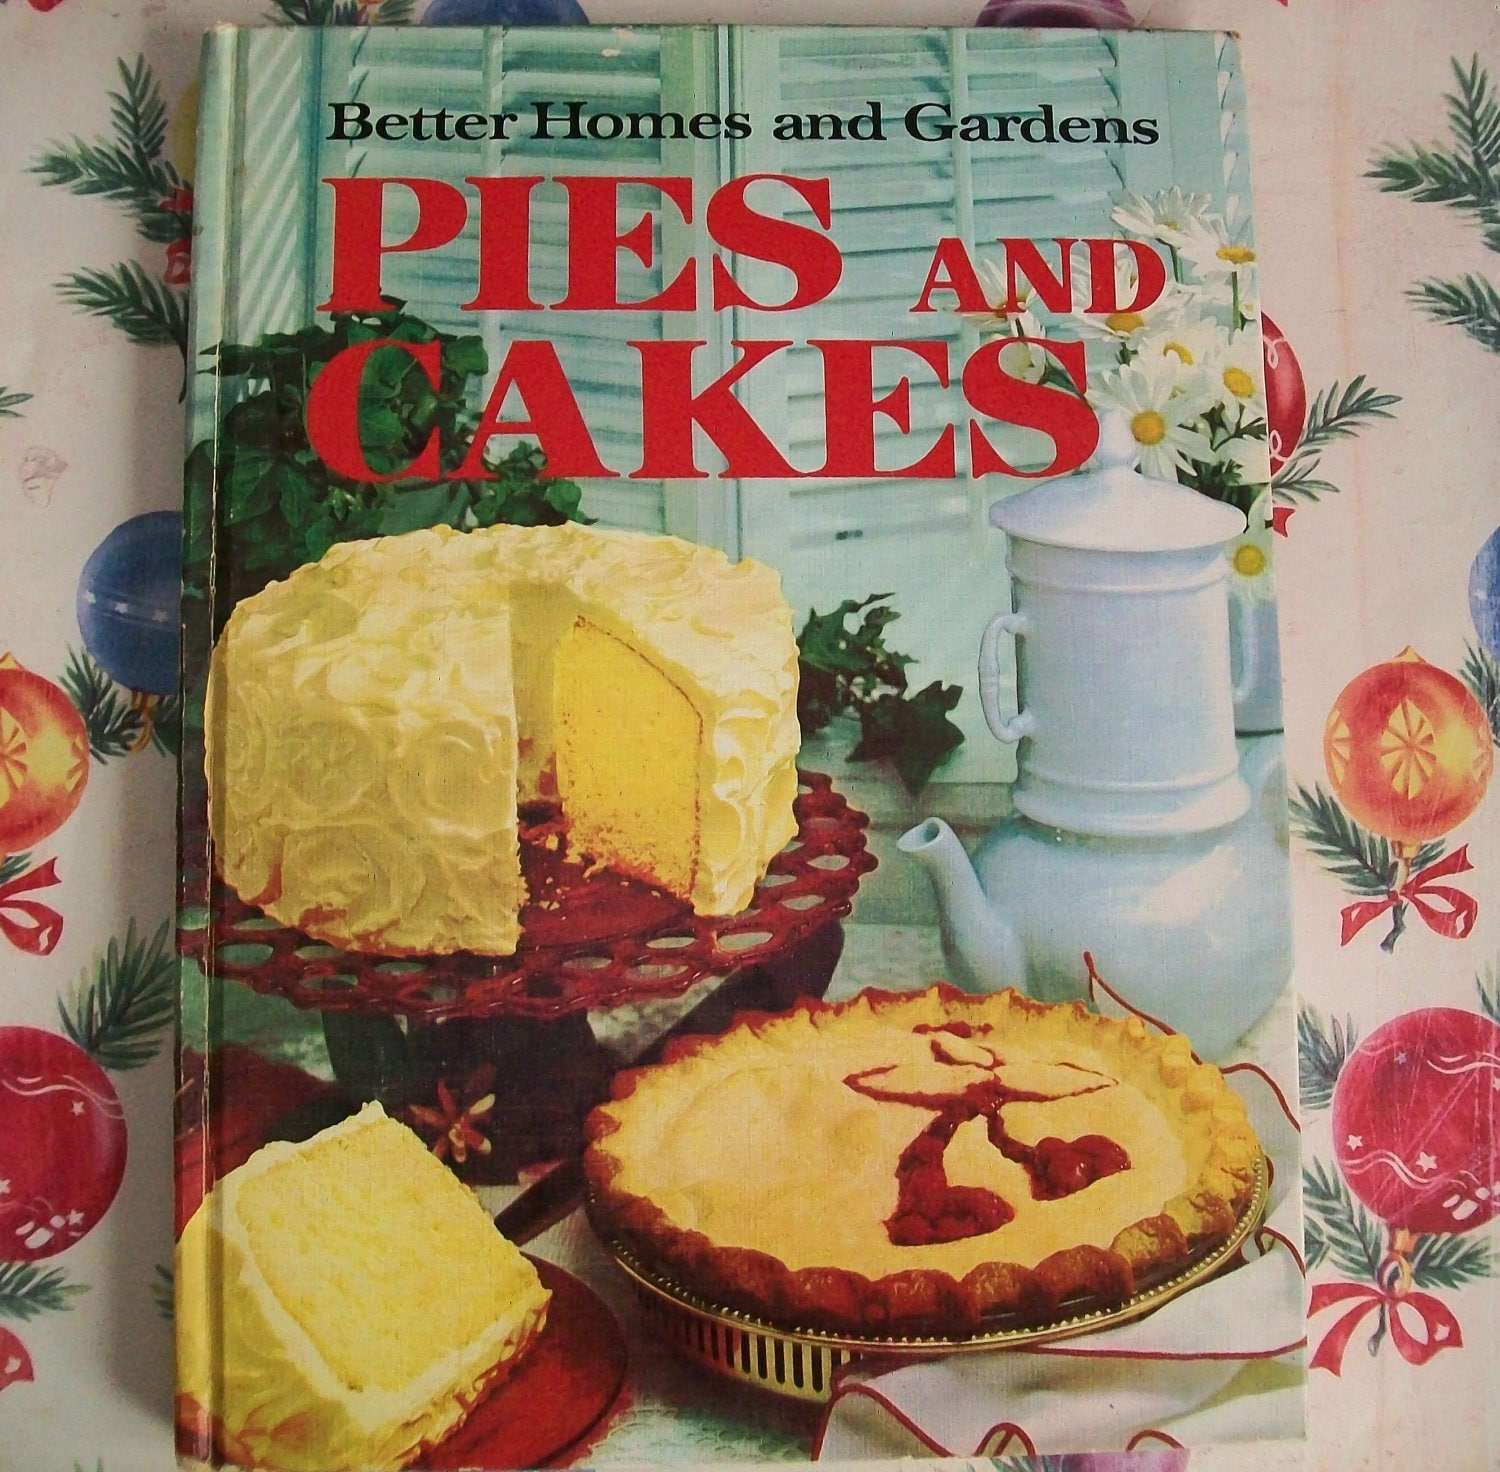 Vintage 1960s cookbook pies cakes better homes and by - Better homes and gardens cookbook 1968 ...